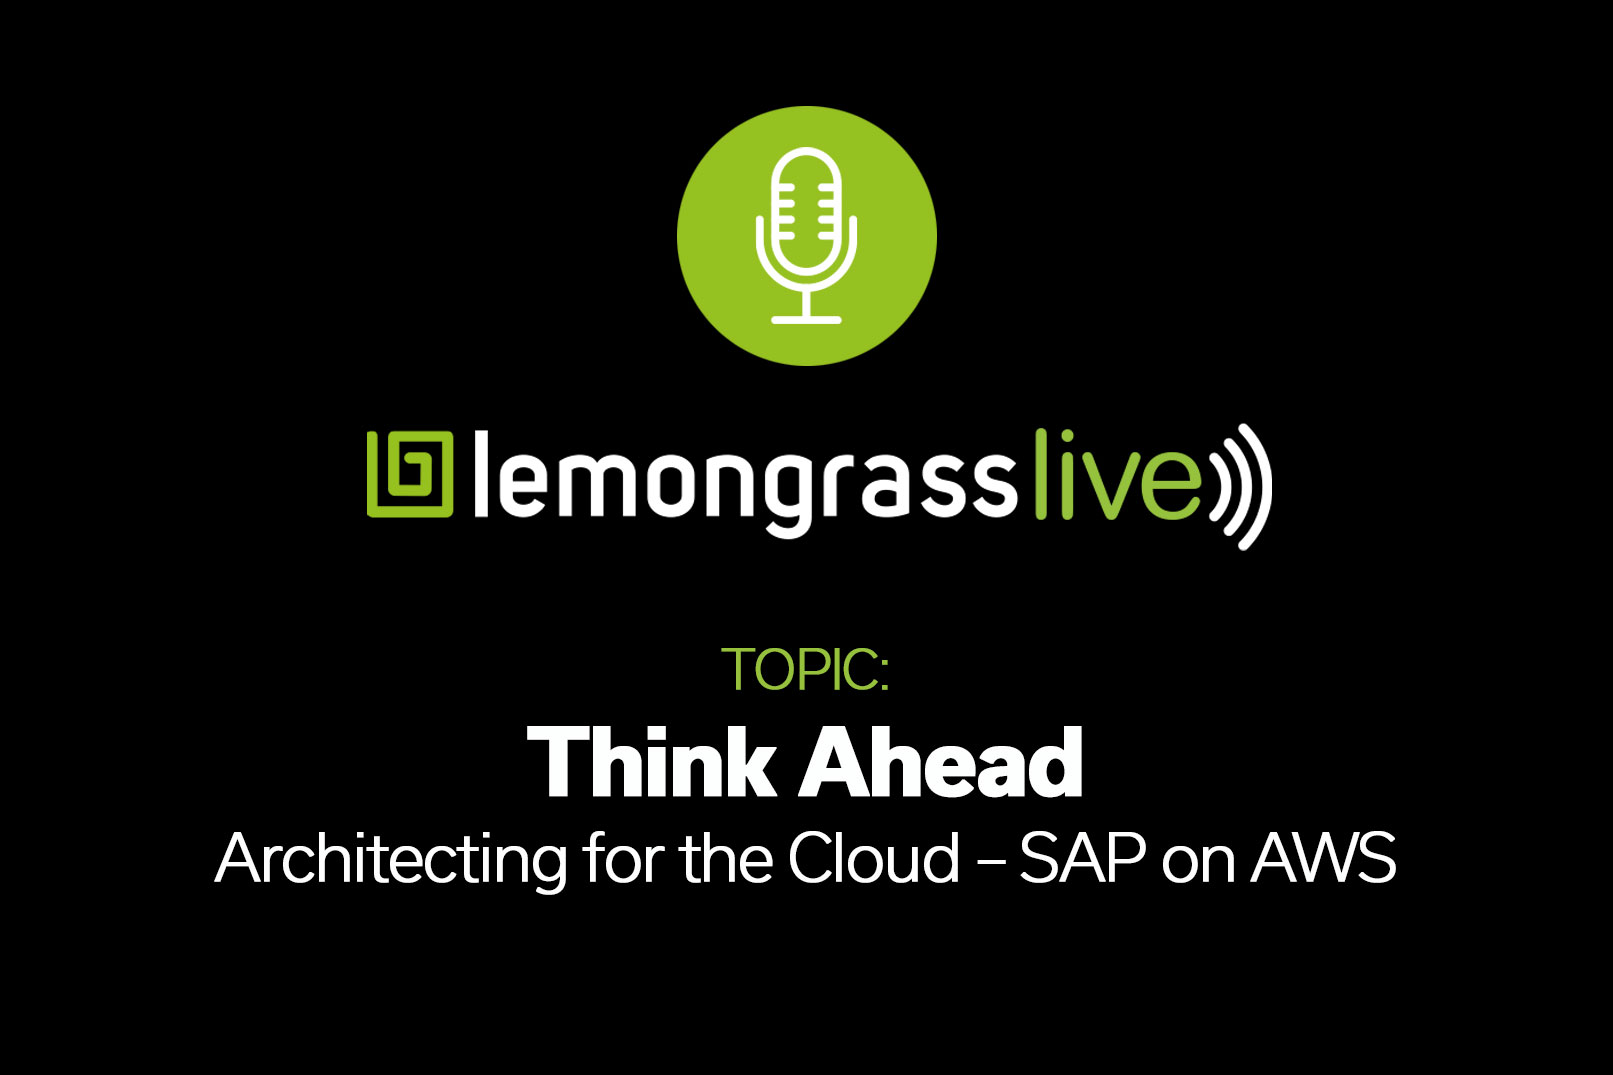 Lemongrass Live - Architecting for the Cloud - SAP on AWS